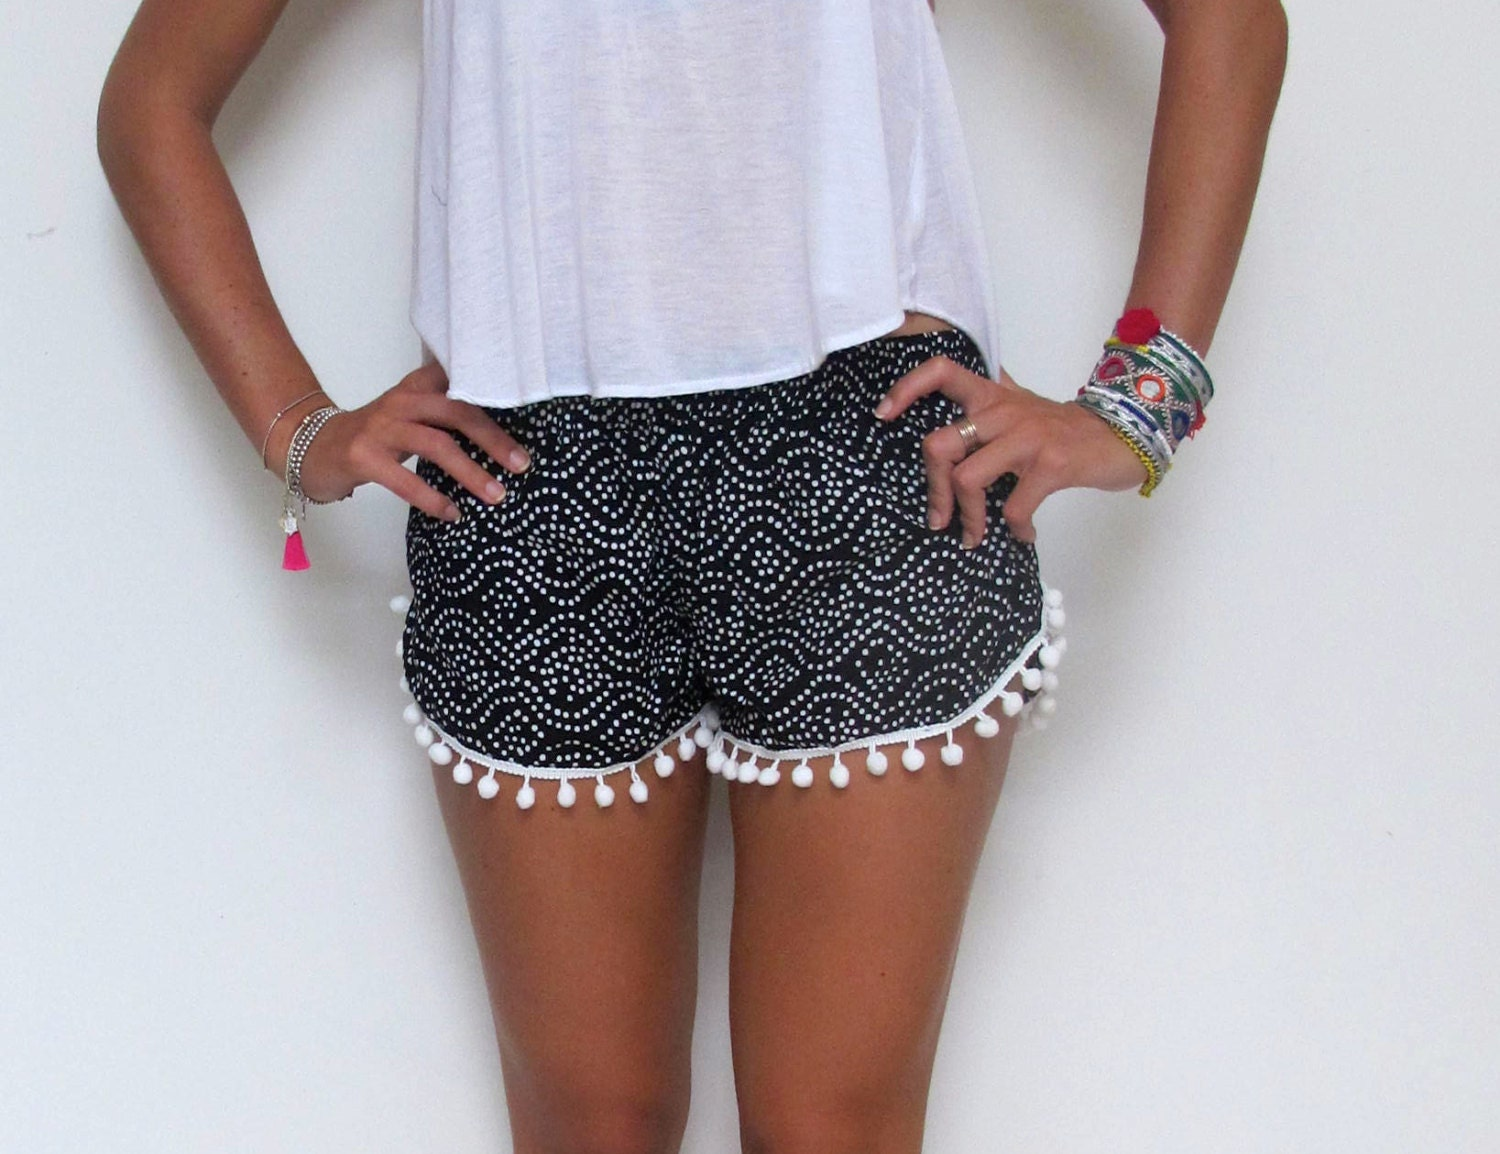 You searched for: pom pom shorts! Etsy is the home to thousands of handmade, vintage, and one-of-a-kind products and gifts related to your search. No matter what you're looking for or where you are in the world, our global marketplace of sellers can help you find unique and affordable options. Let's get started!